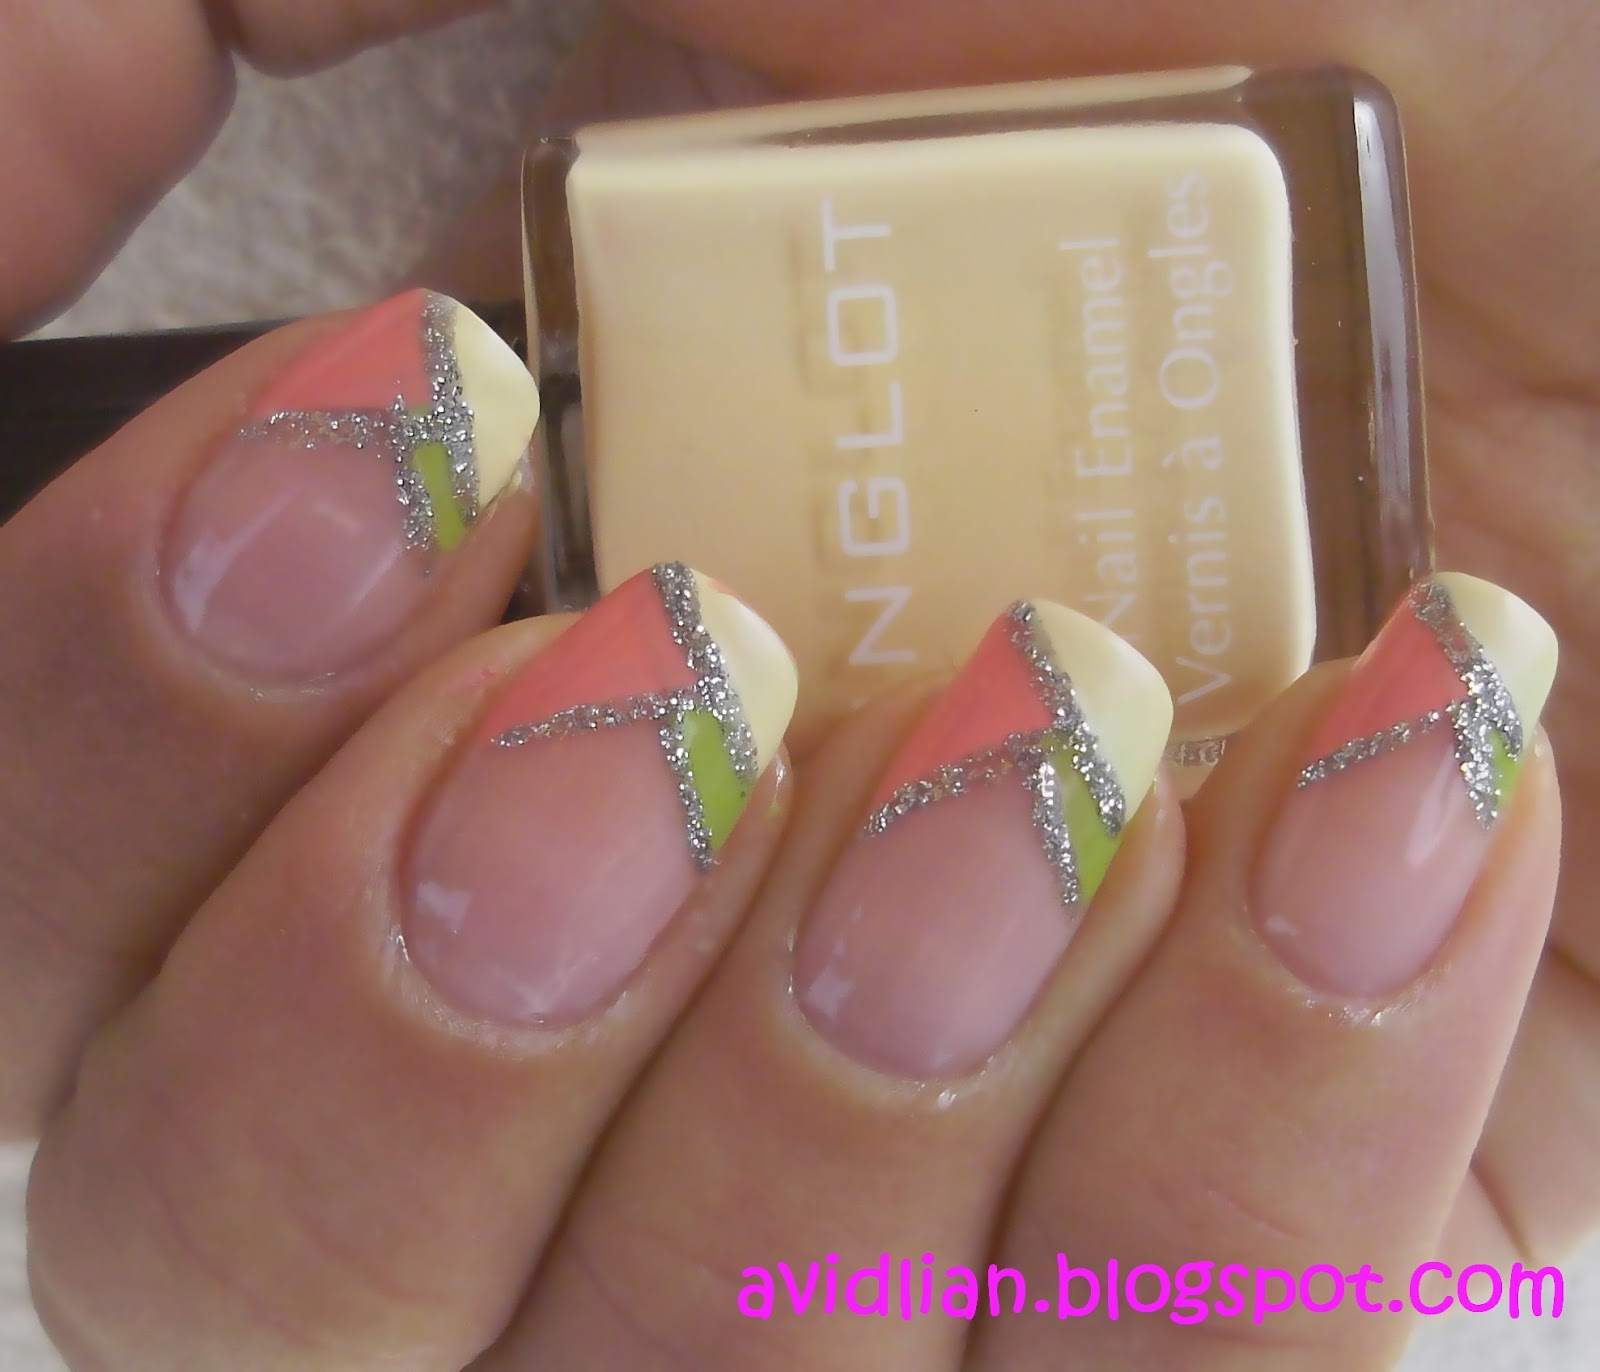 aviDliaN: Chic French Nail Design